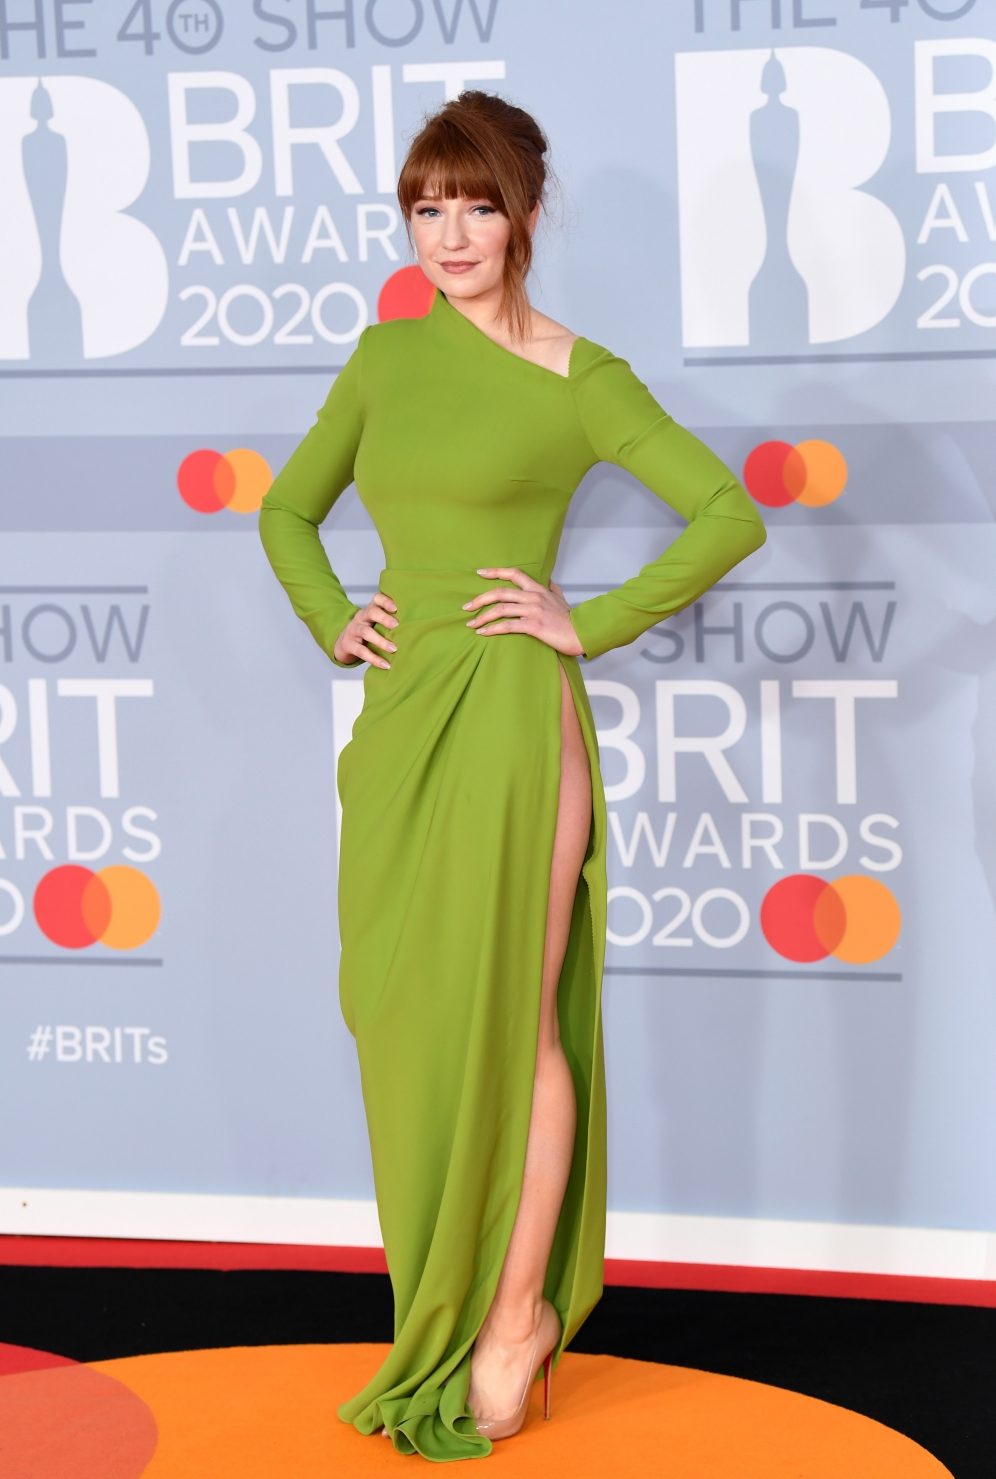 Nicola Roberts | BRIT Awards 2020